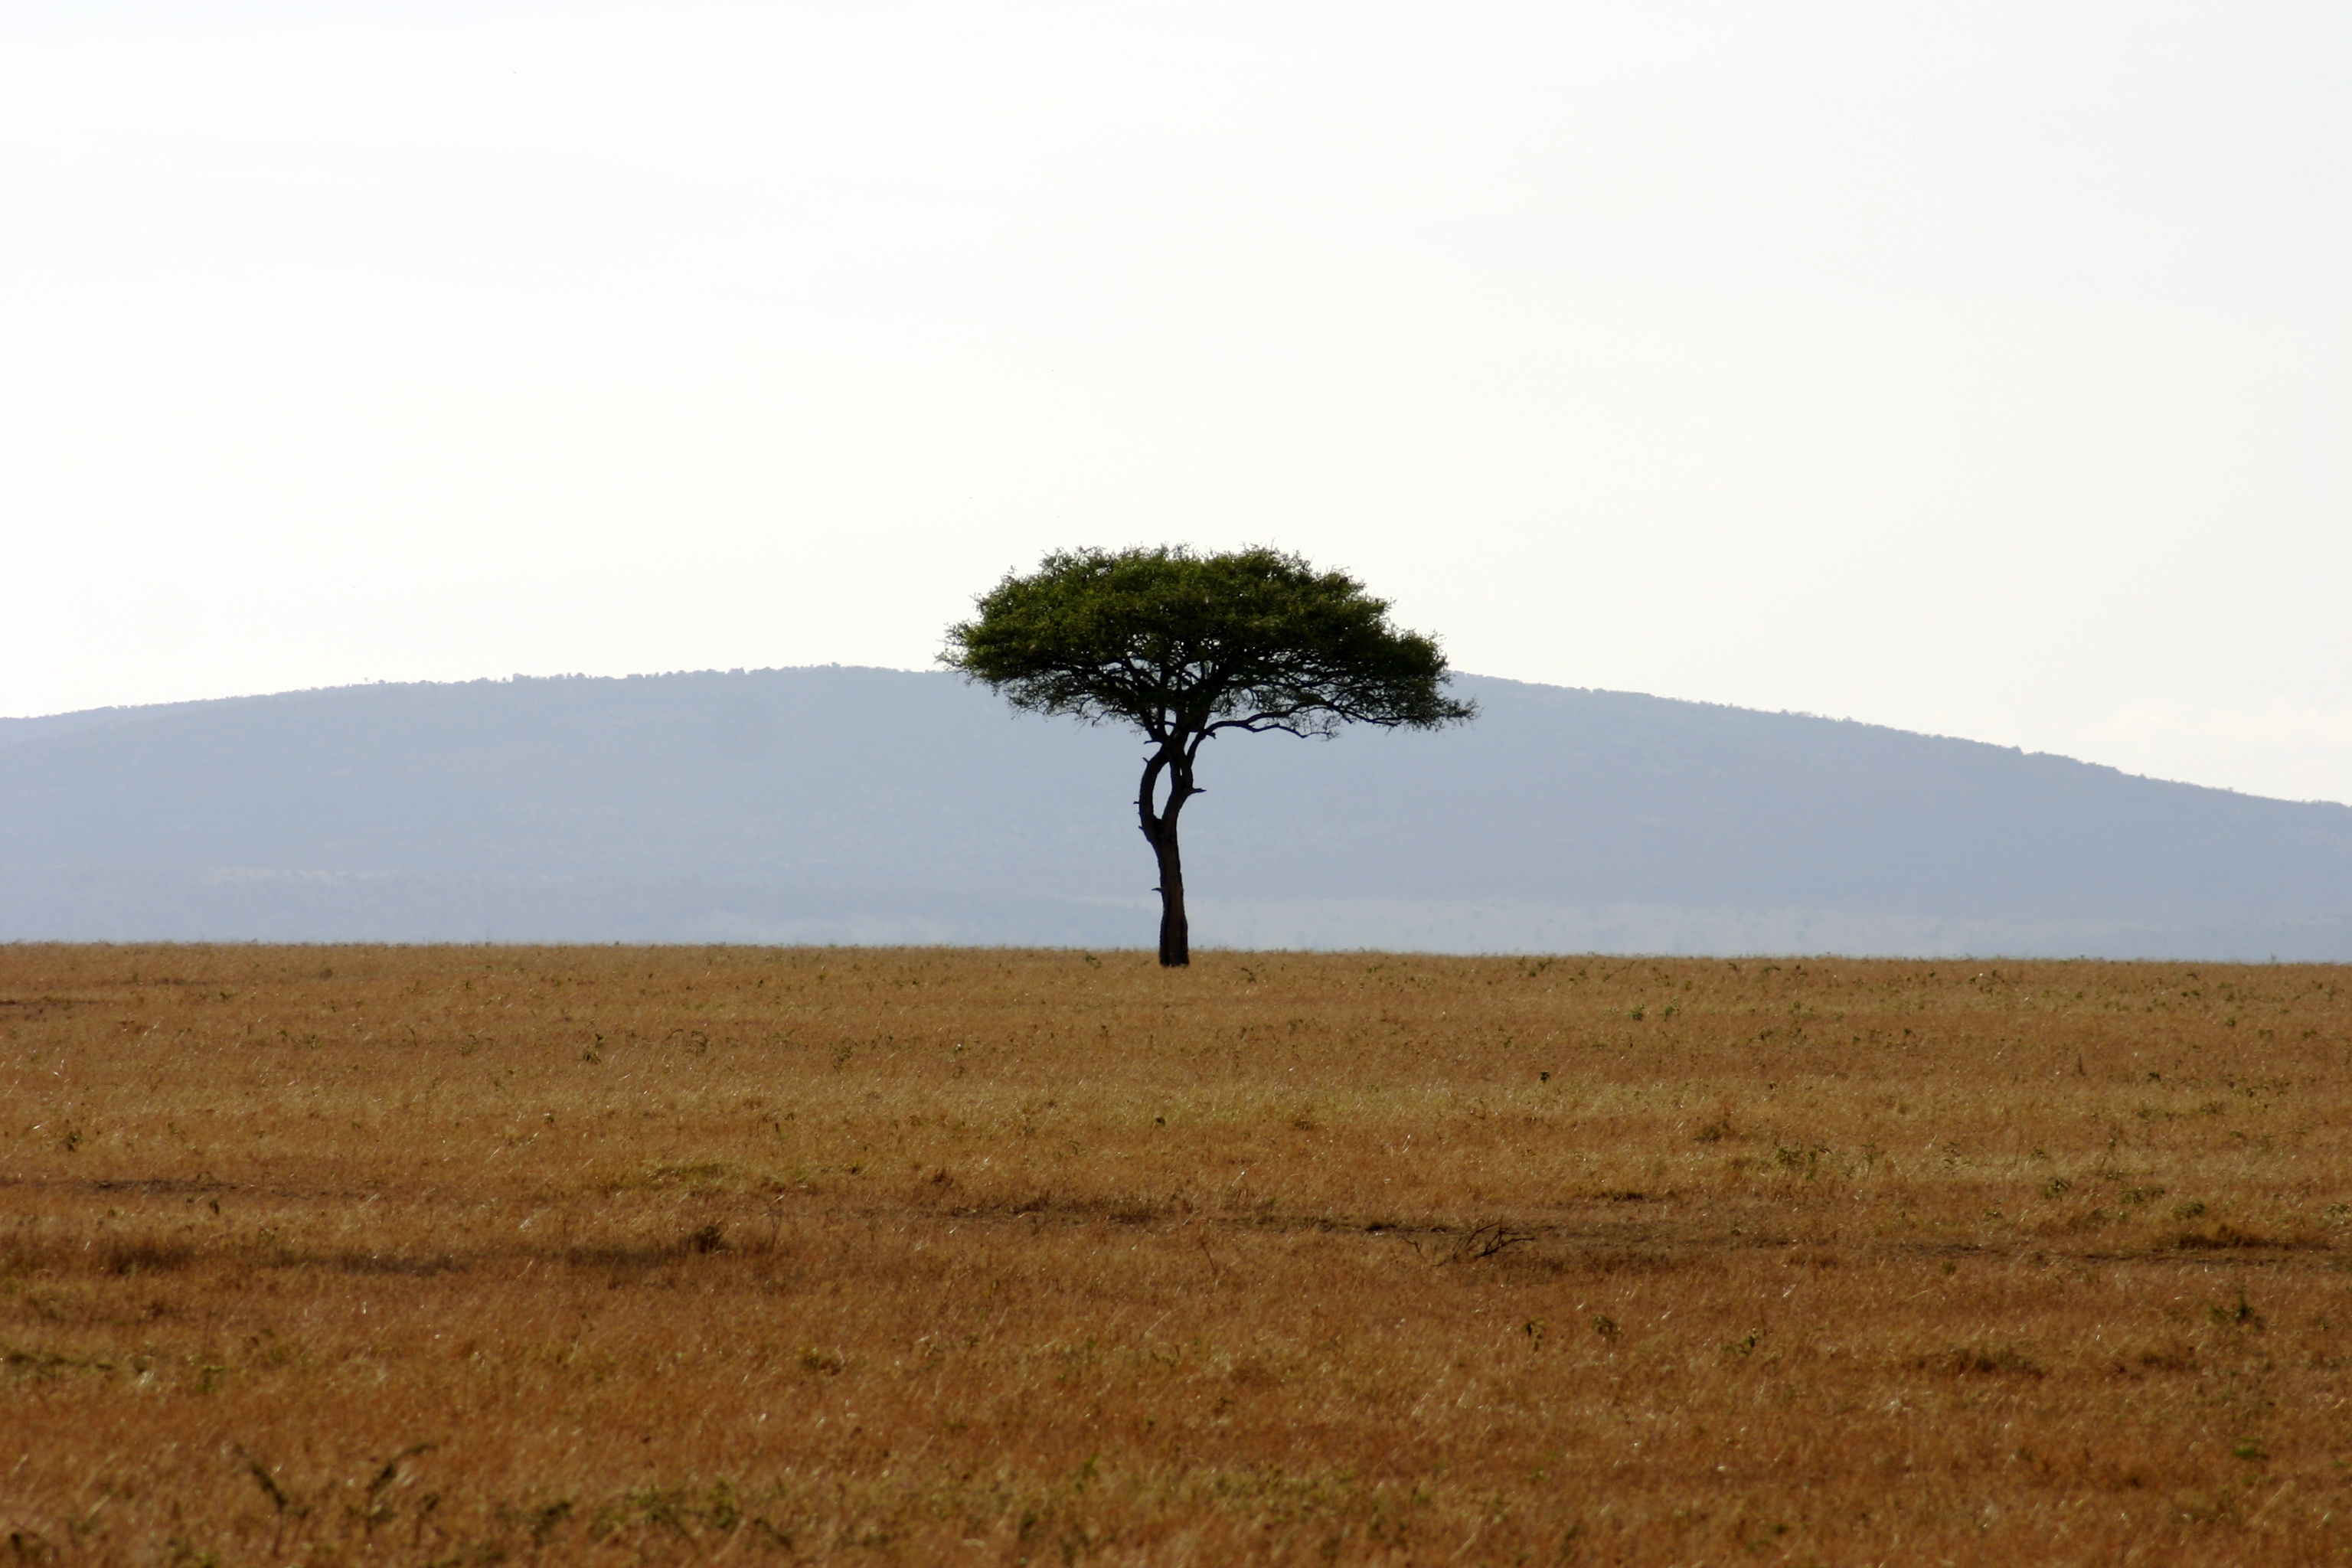 Savanna science in South Africa | EcoPress